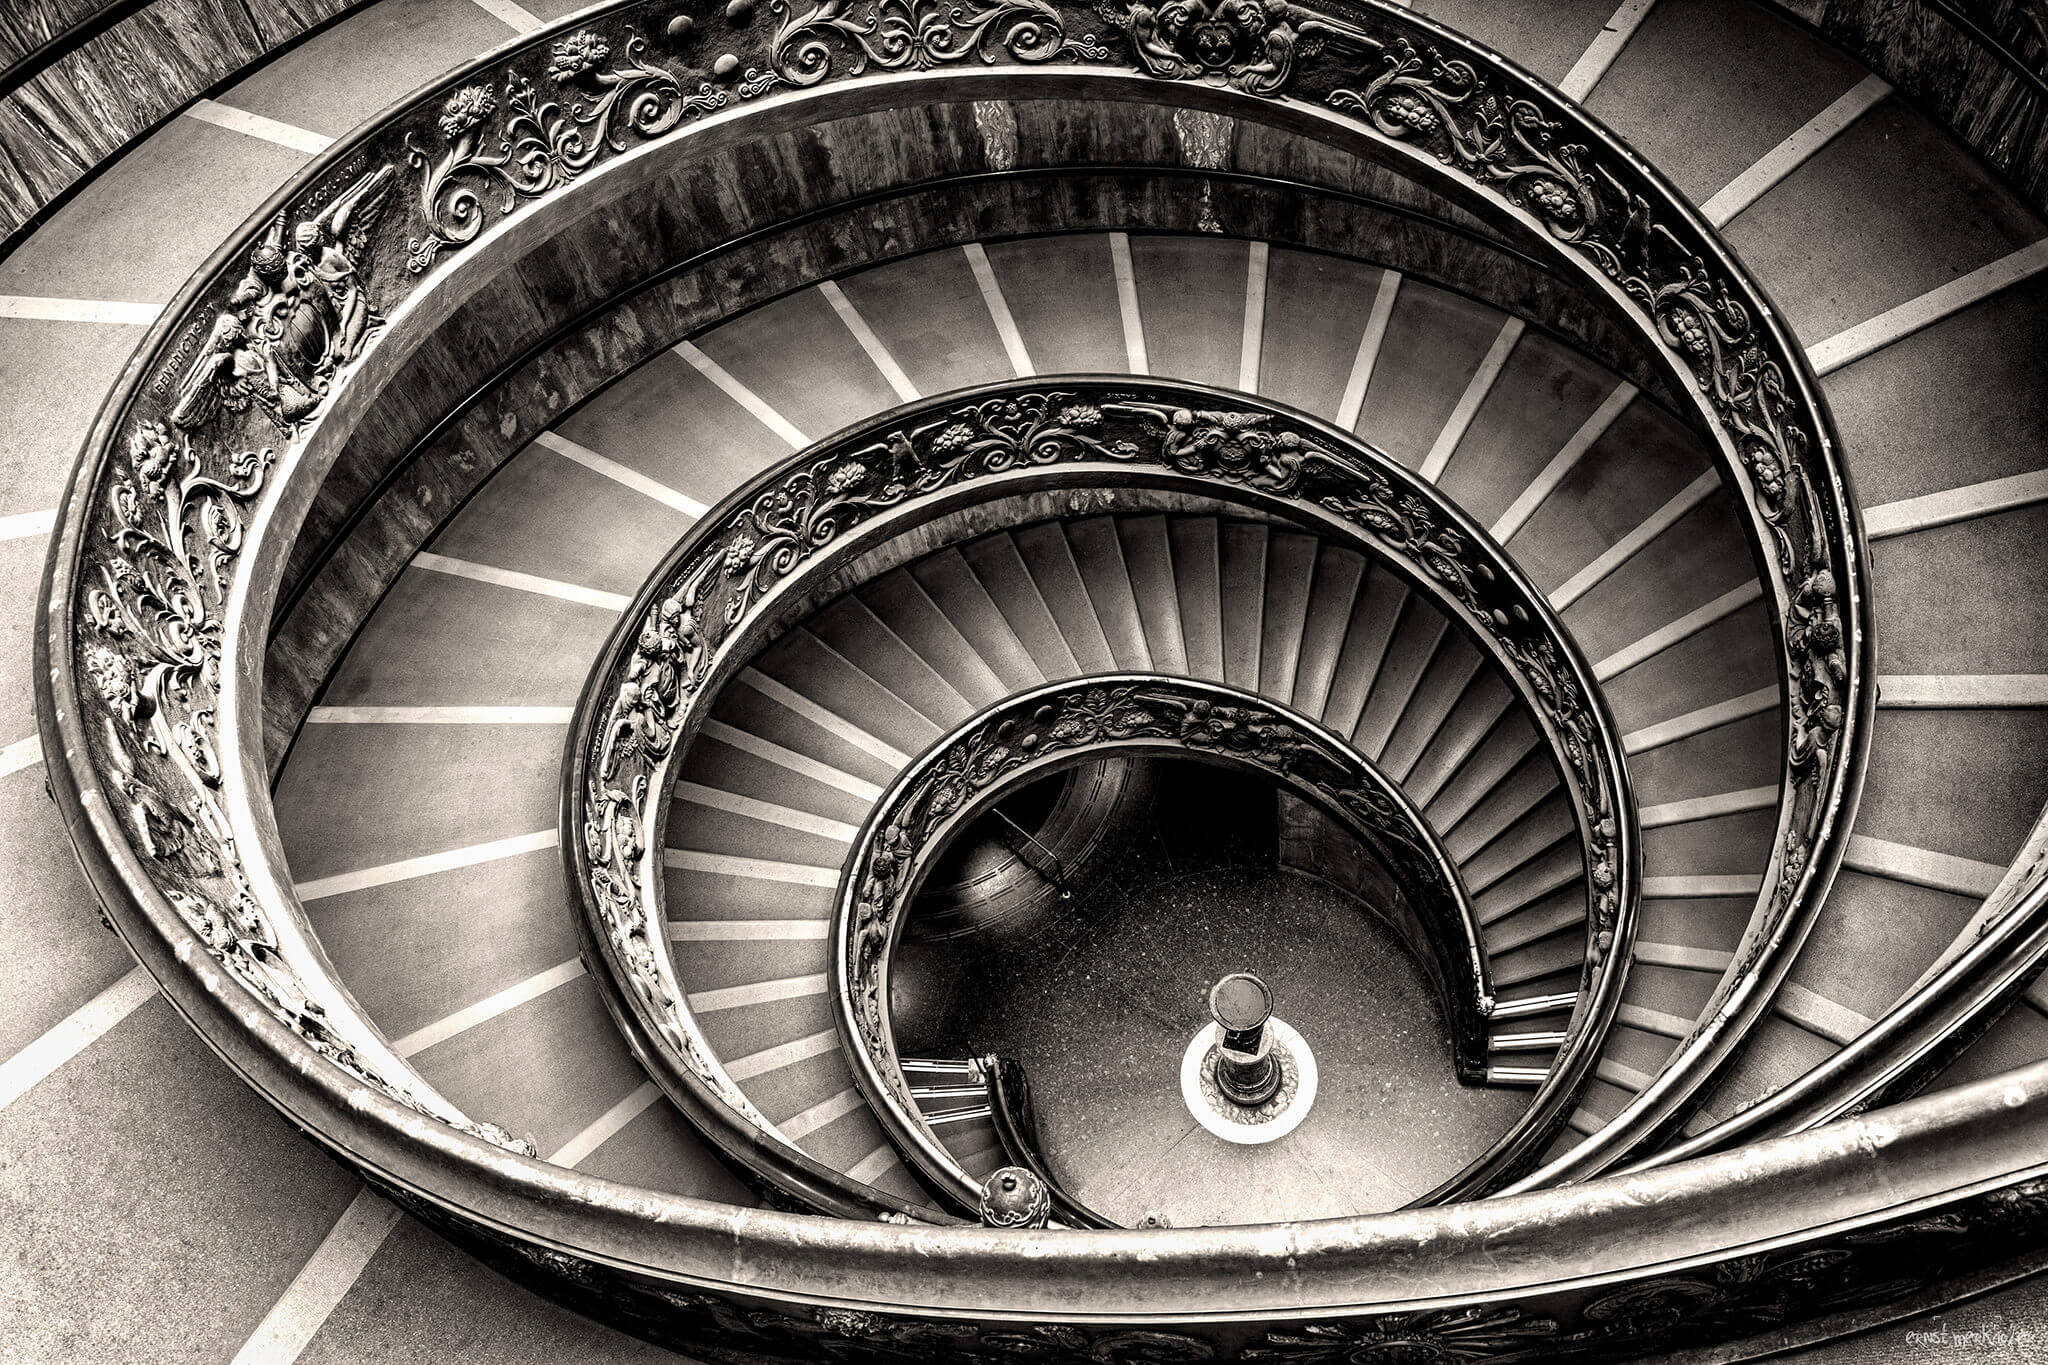 Portfolio Ernst Merkhofer, Fotograf, home, homepage, Rome, spiral treppe, double helix staircase, vatican, bnw, sw, schwarz-weiss, one of a kind.